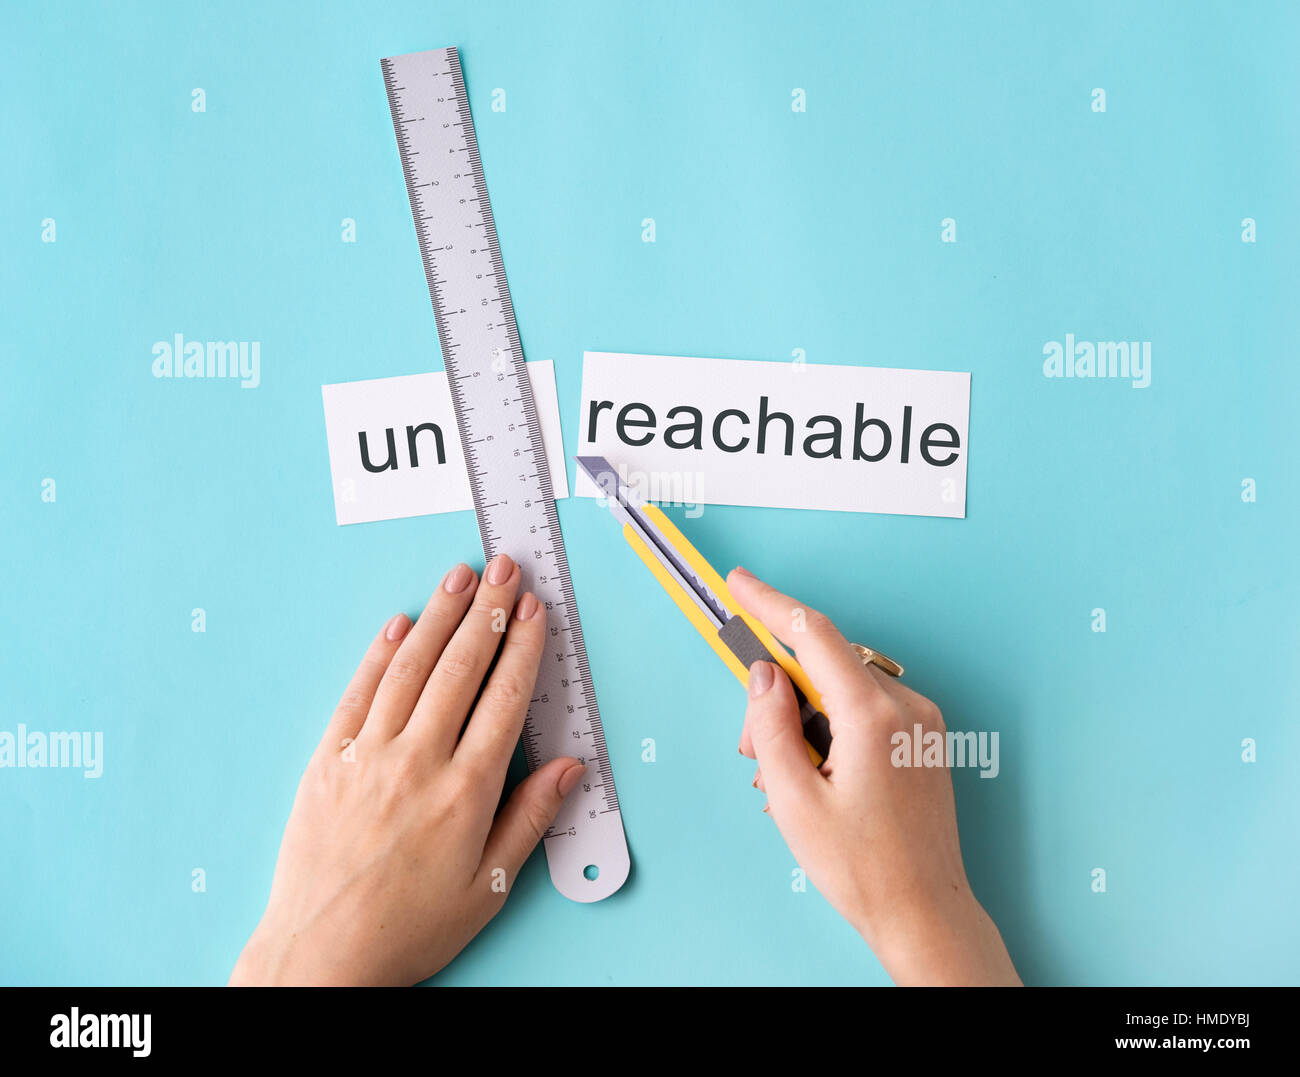 Unreachable Unattainable Hand Cut Words Split Concept - Stock Image